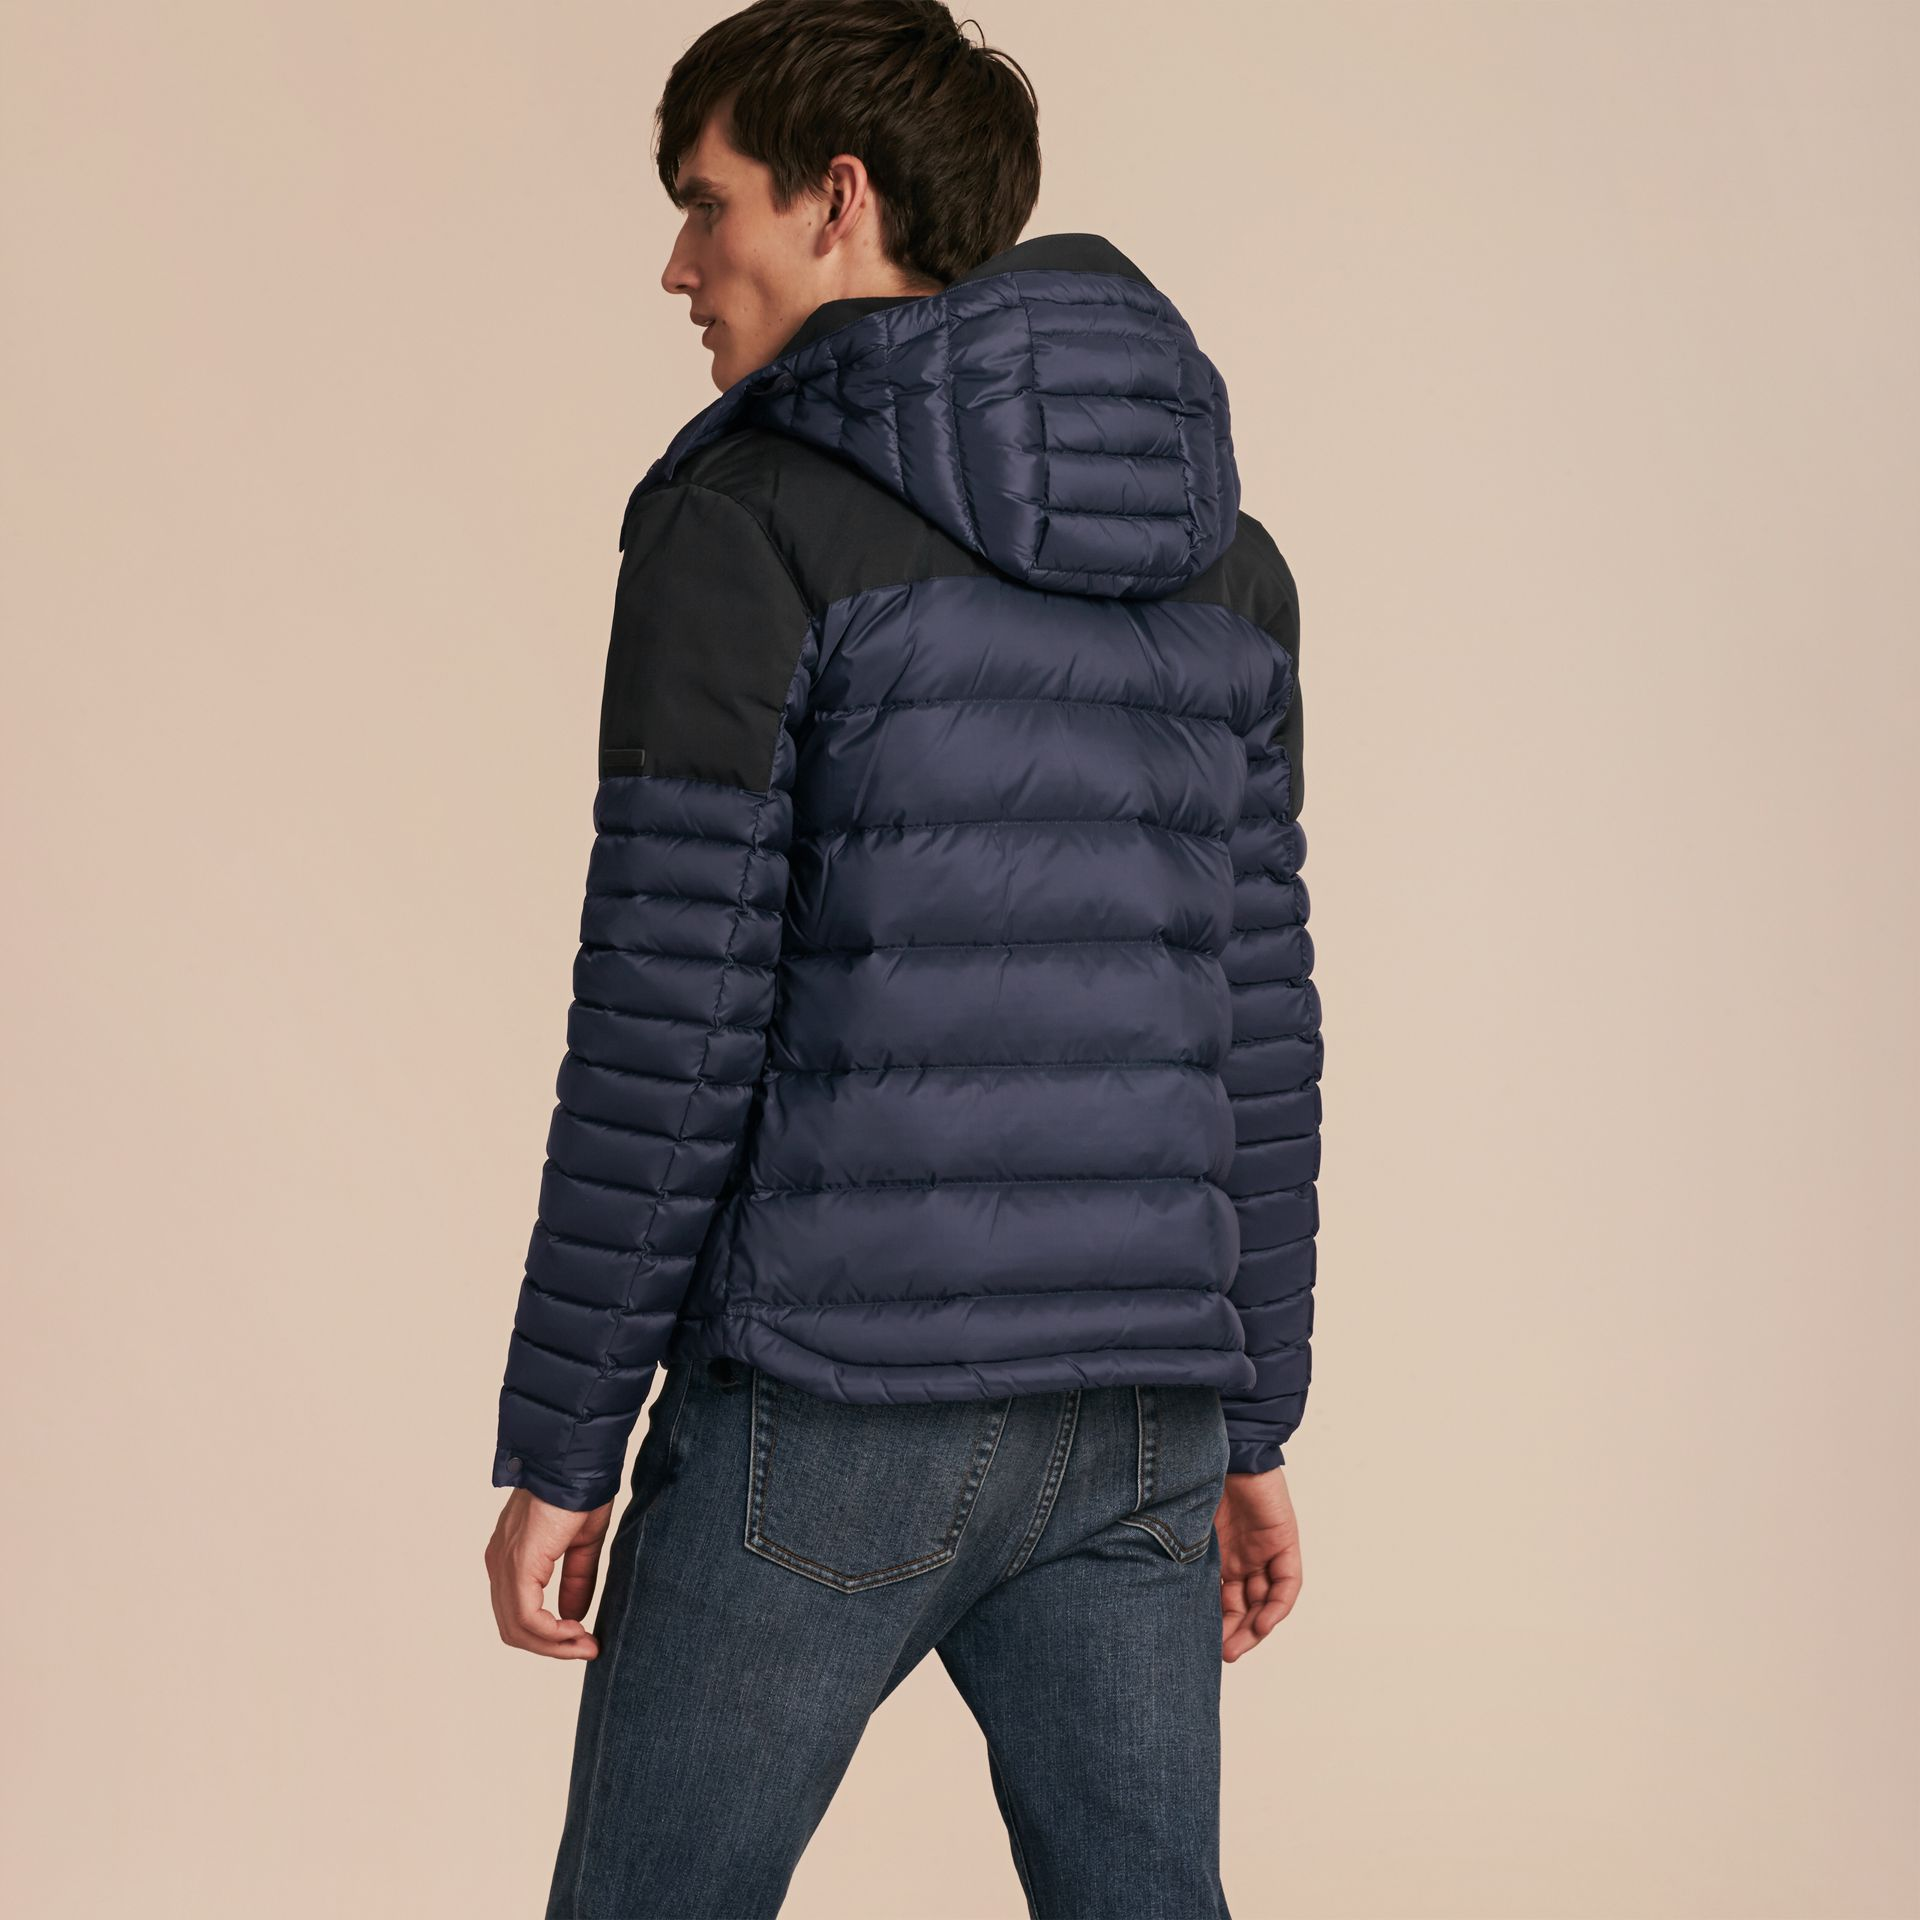 Navy Mid-weight Down-filled Technical Puffer Jacket Navy - gallery image 3